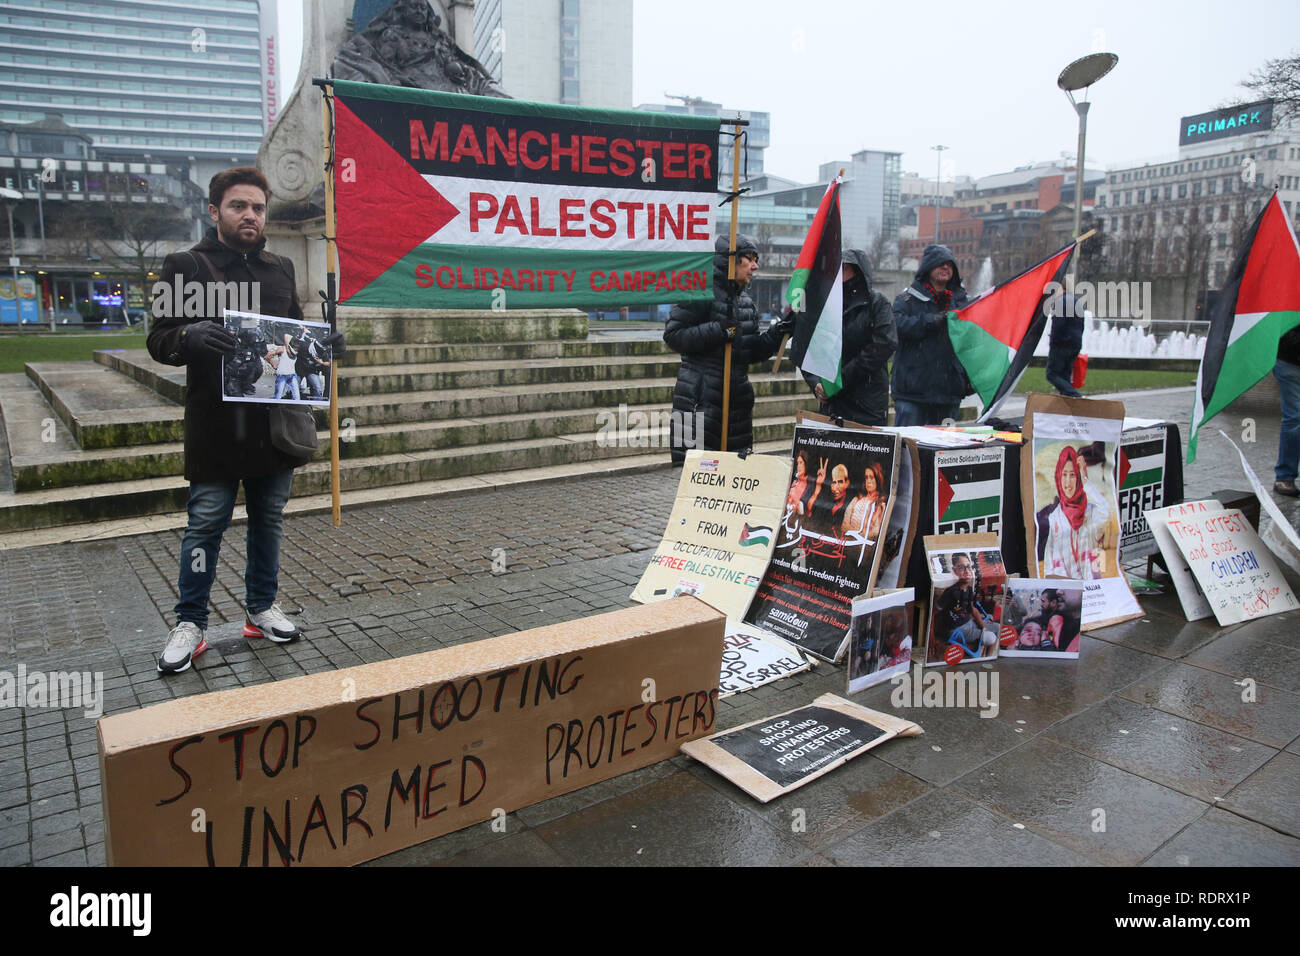 Manchester, UK. 19th January 2019. Pro Palestinian protesters take to the streets during International week of action called by the Manchester boycott Israel group in solidarity with the Palestinian Prisoner Solidarity Network.  19th January 2019 (C)Barbara Cook/Alamy Live News Credit: Barbara Cook/Alamy Live News - Stock Image